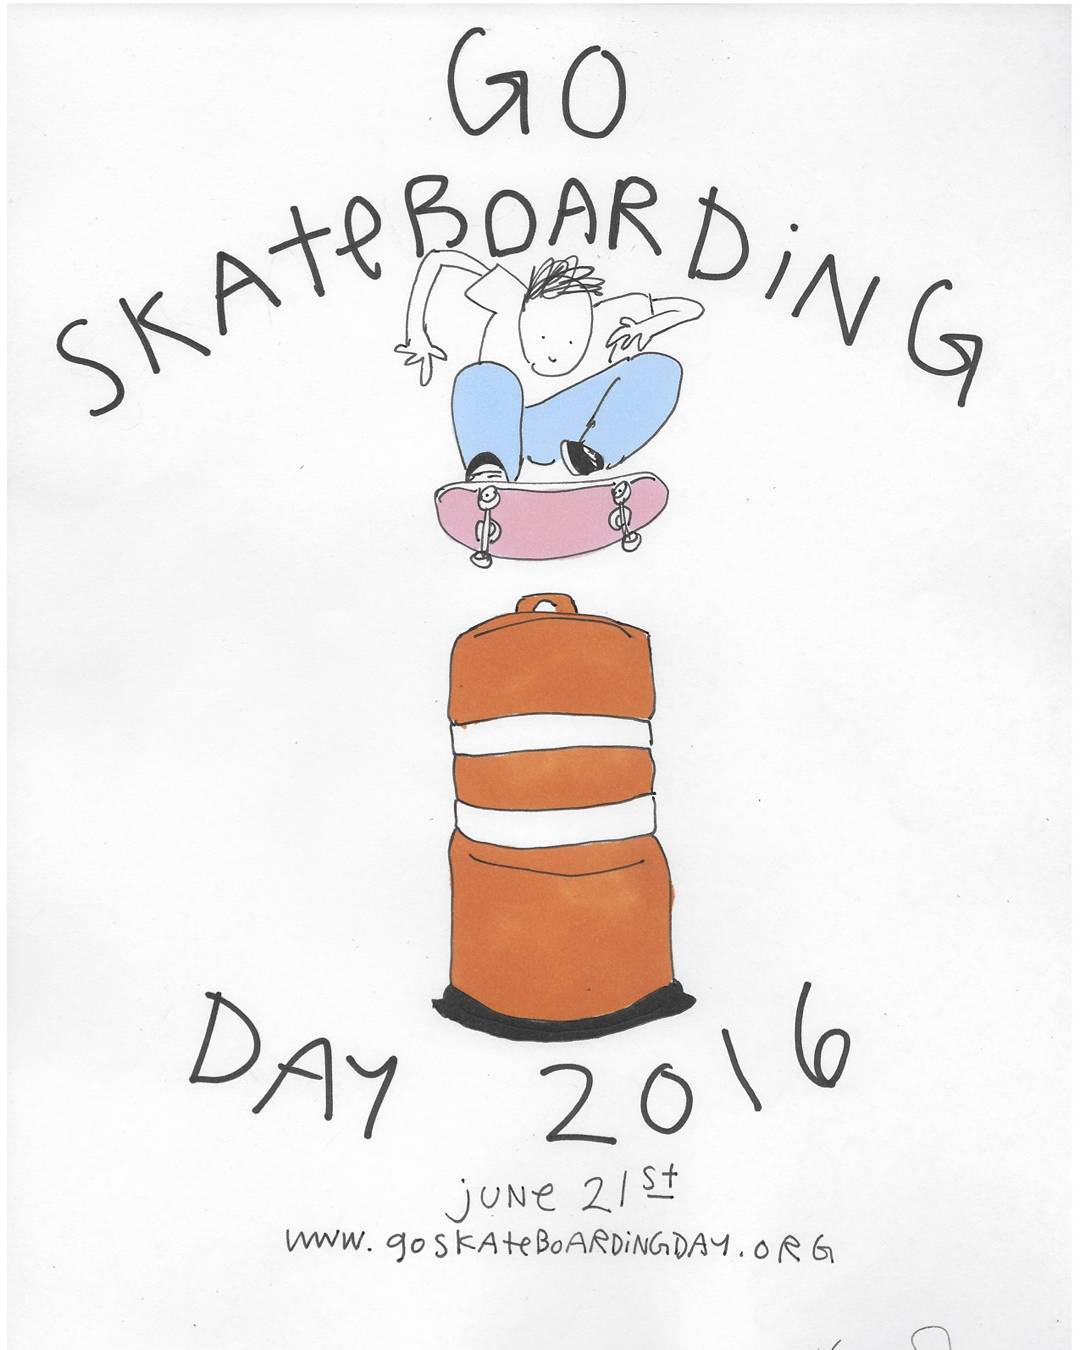 Happy Go Skateboarding Day!!! Get outside and enjoy the sun on that wheelie board of yours!!! Art: Henry Jones  #LoadedBoards #GoSkateboardingDay